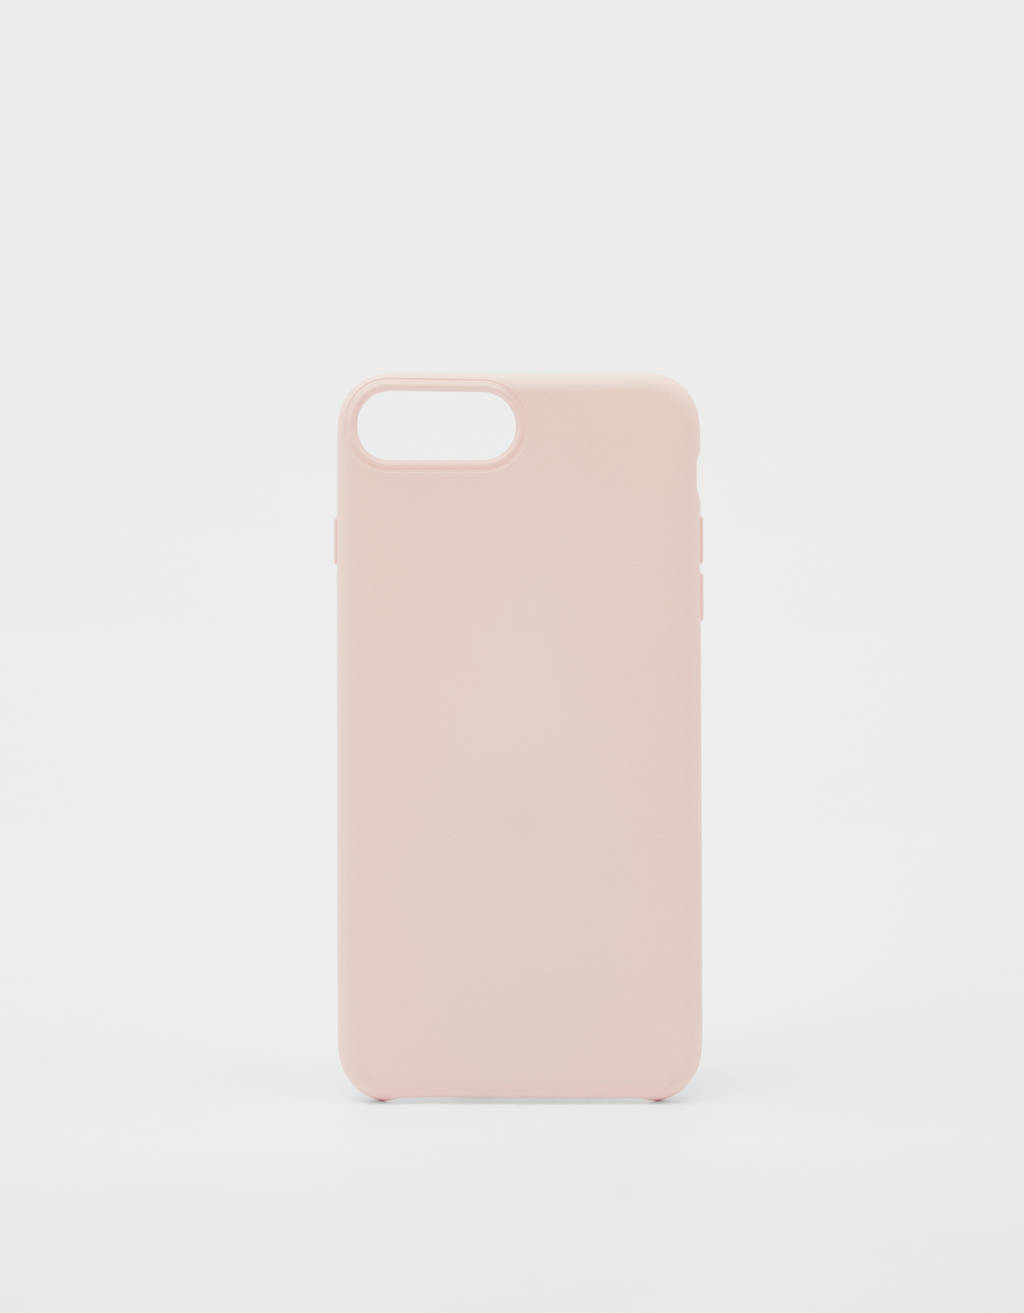 Coque unie iPhone 6 plus / 7 plus / 8 plus